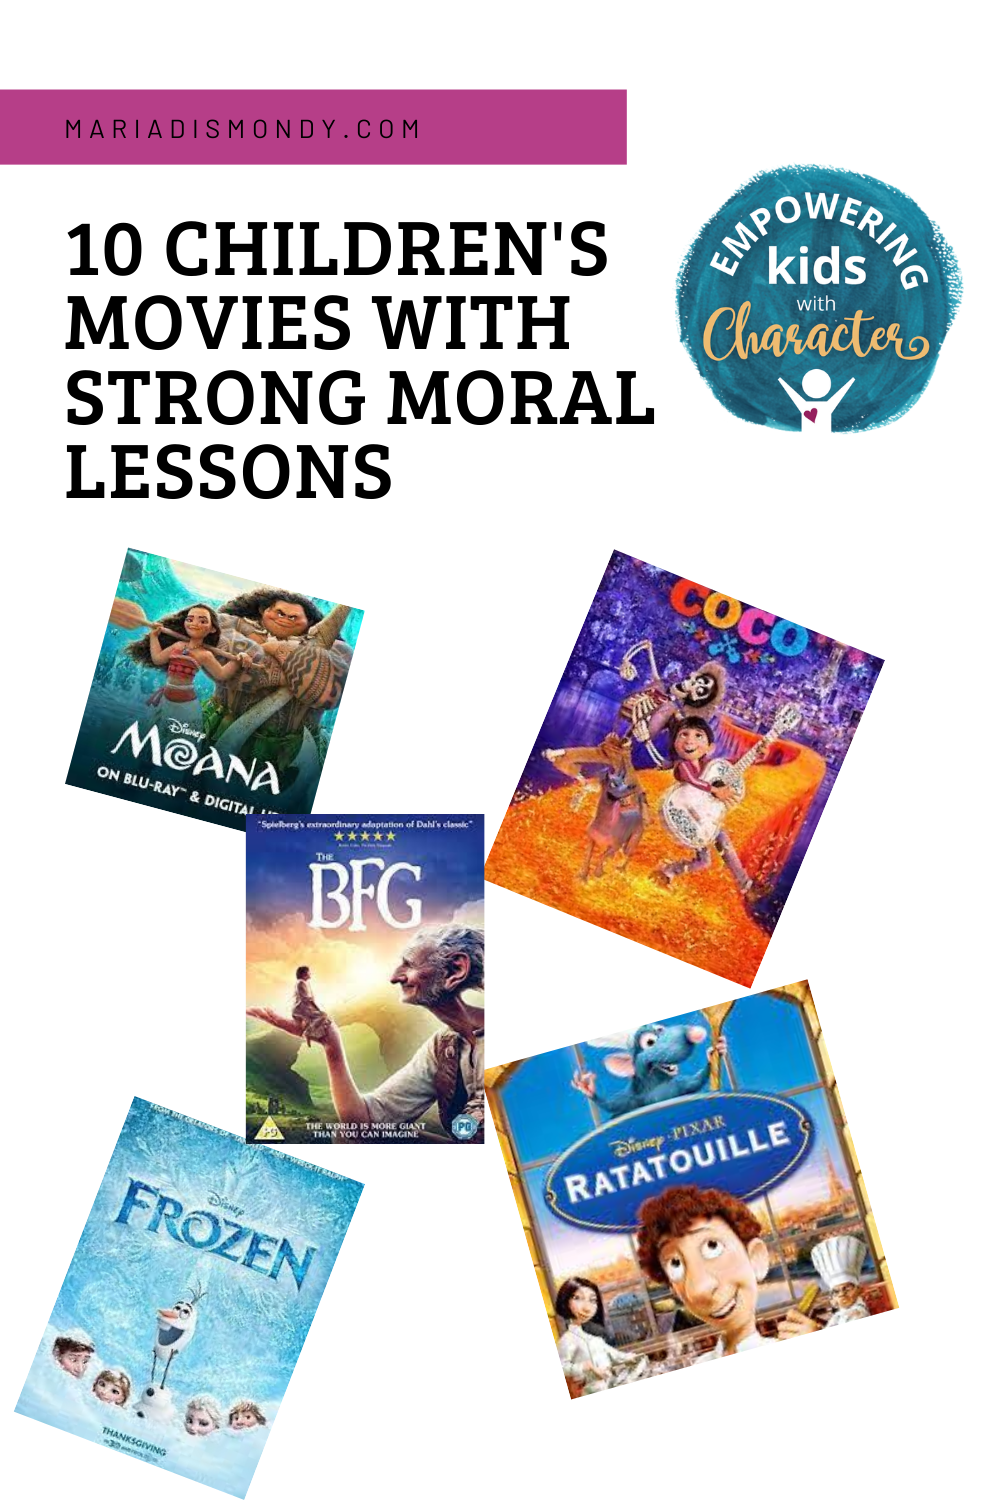 Children's Movies With Strong Moral Lessons